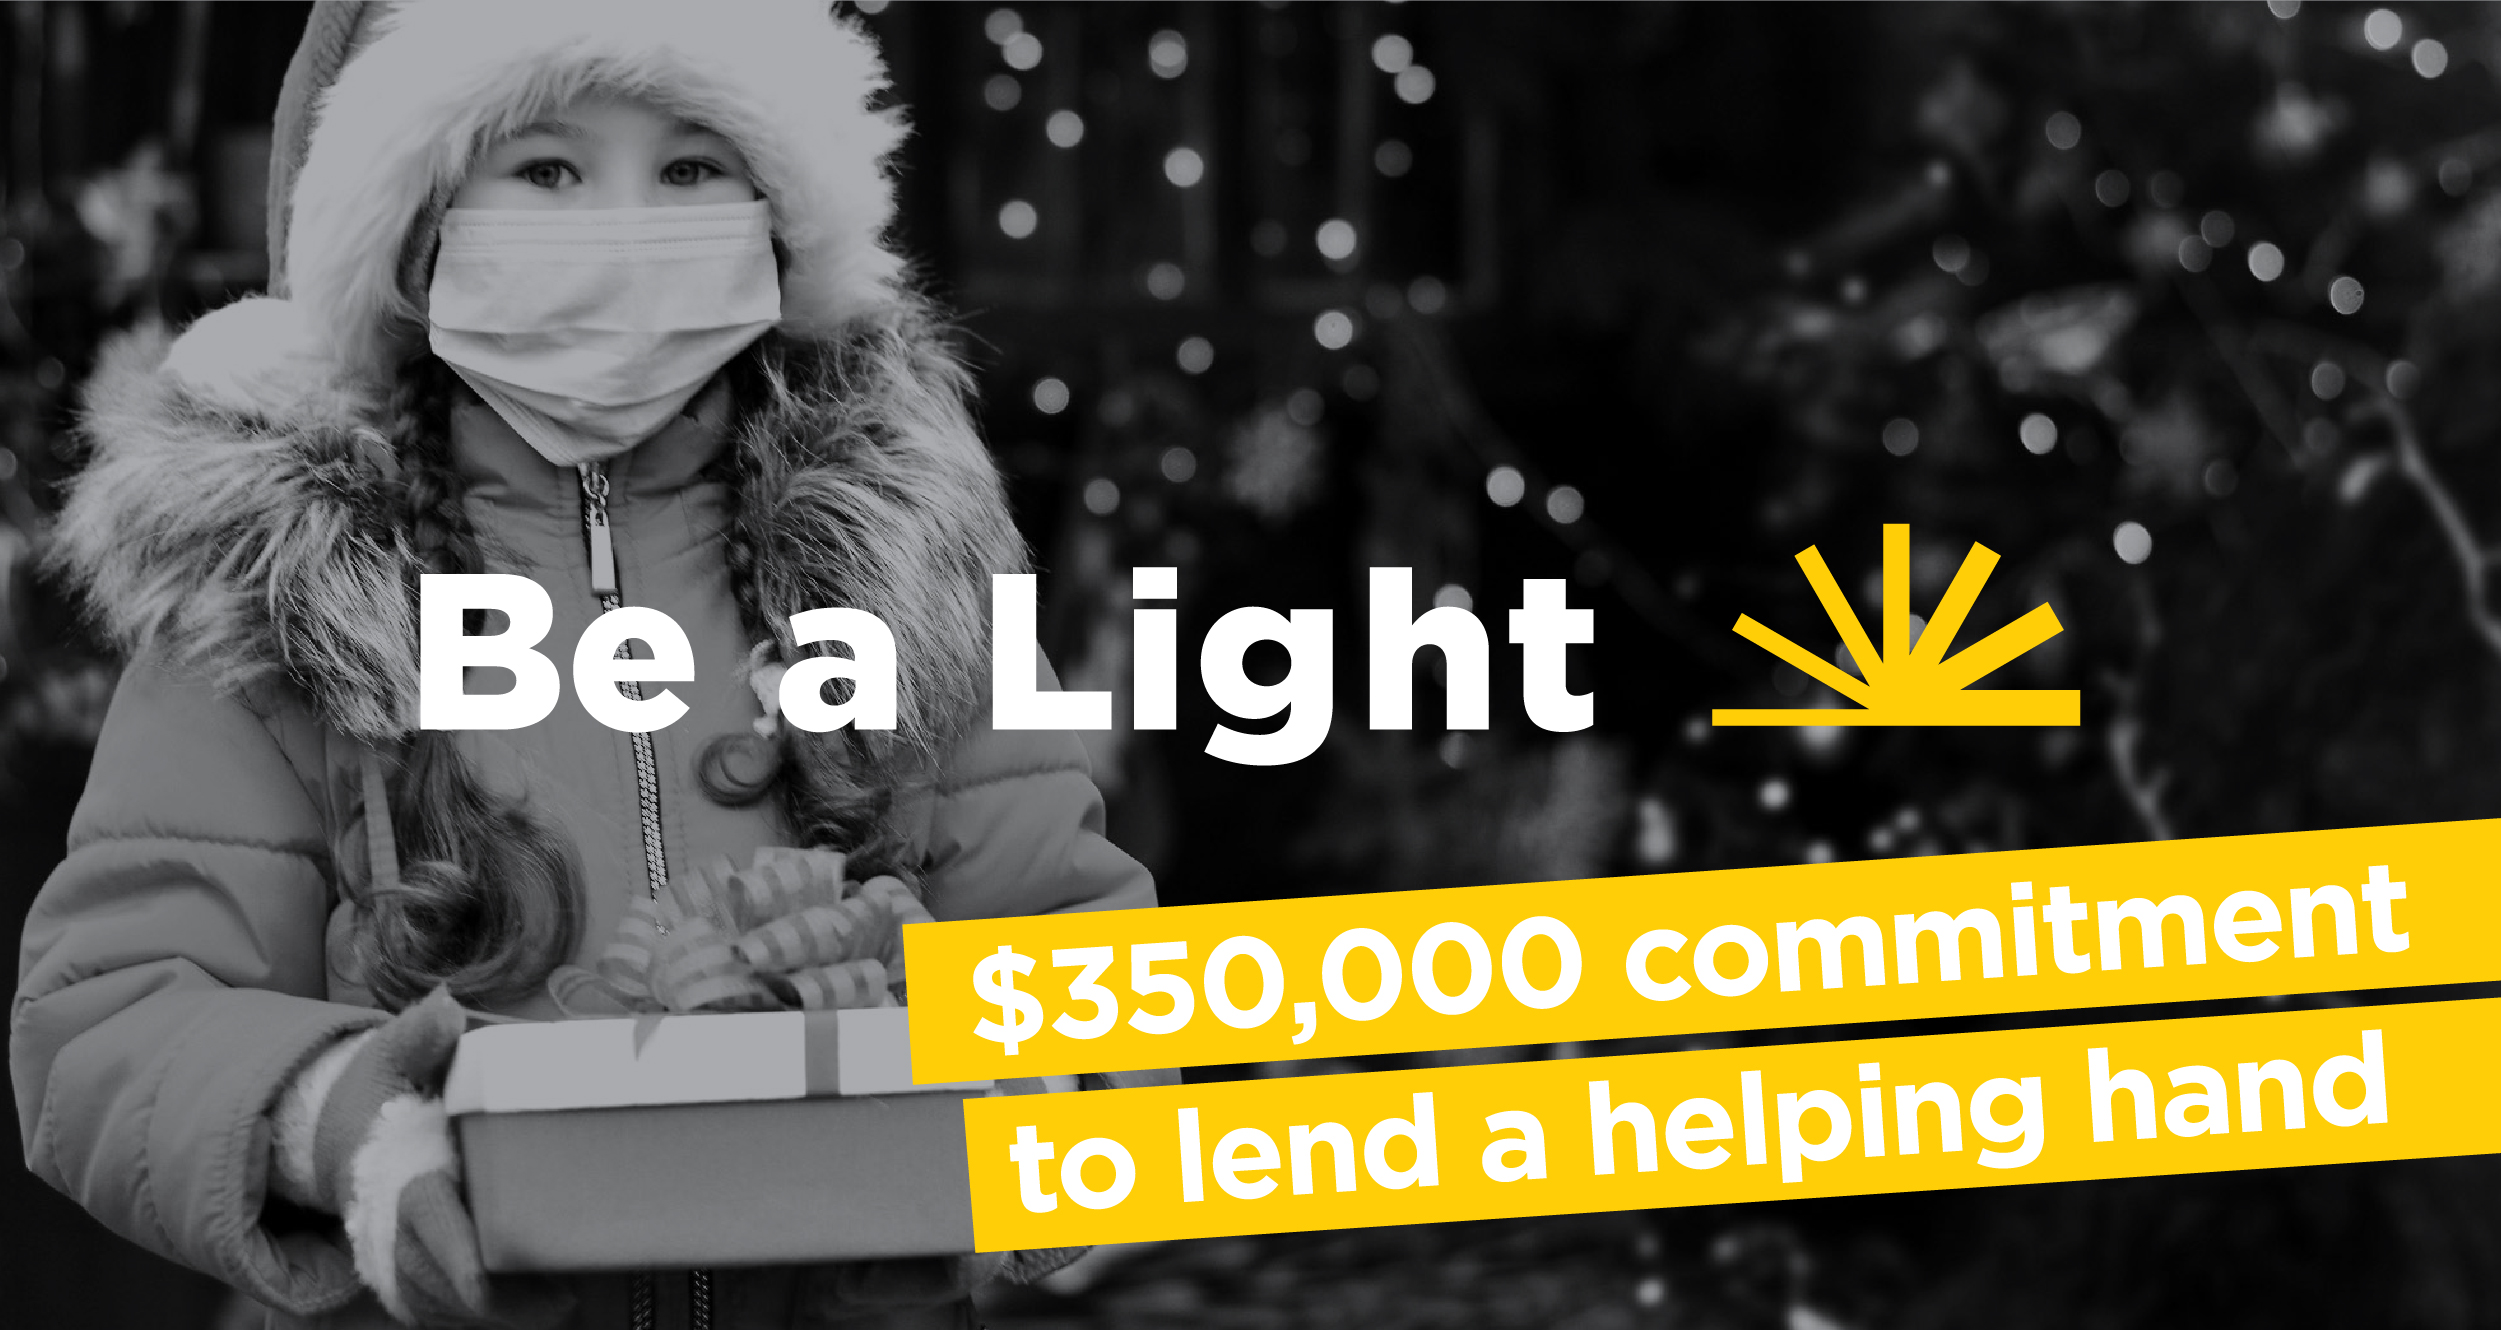 Advertisement announcing $350,000 donation Be a Light campaign